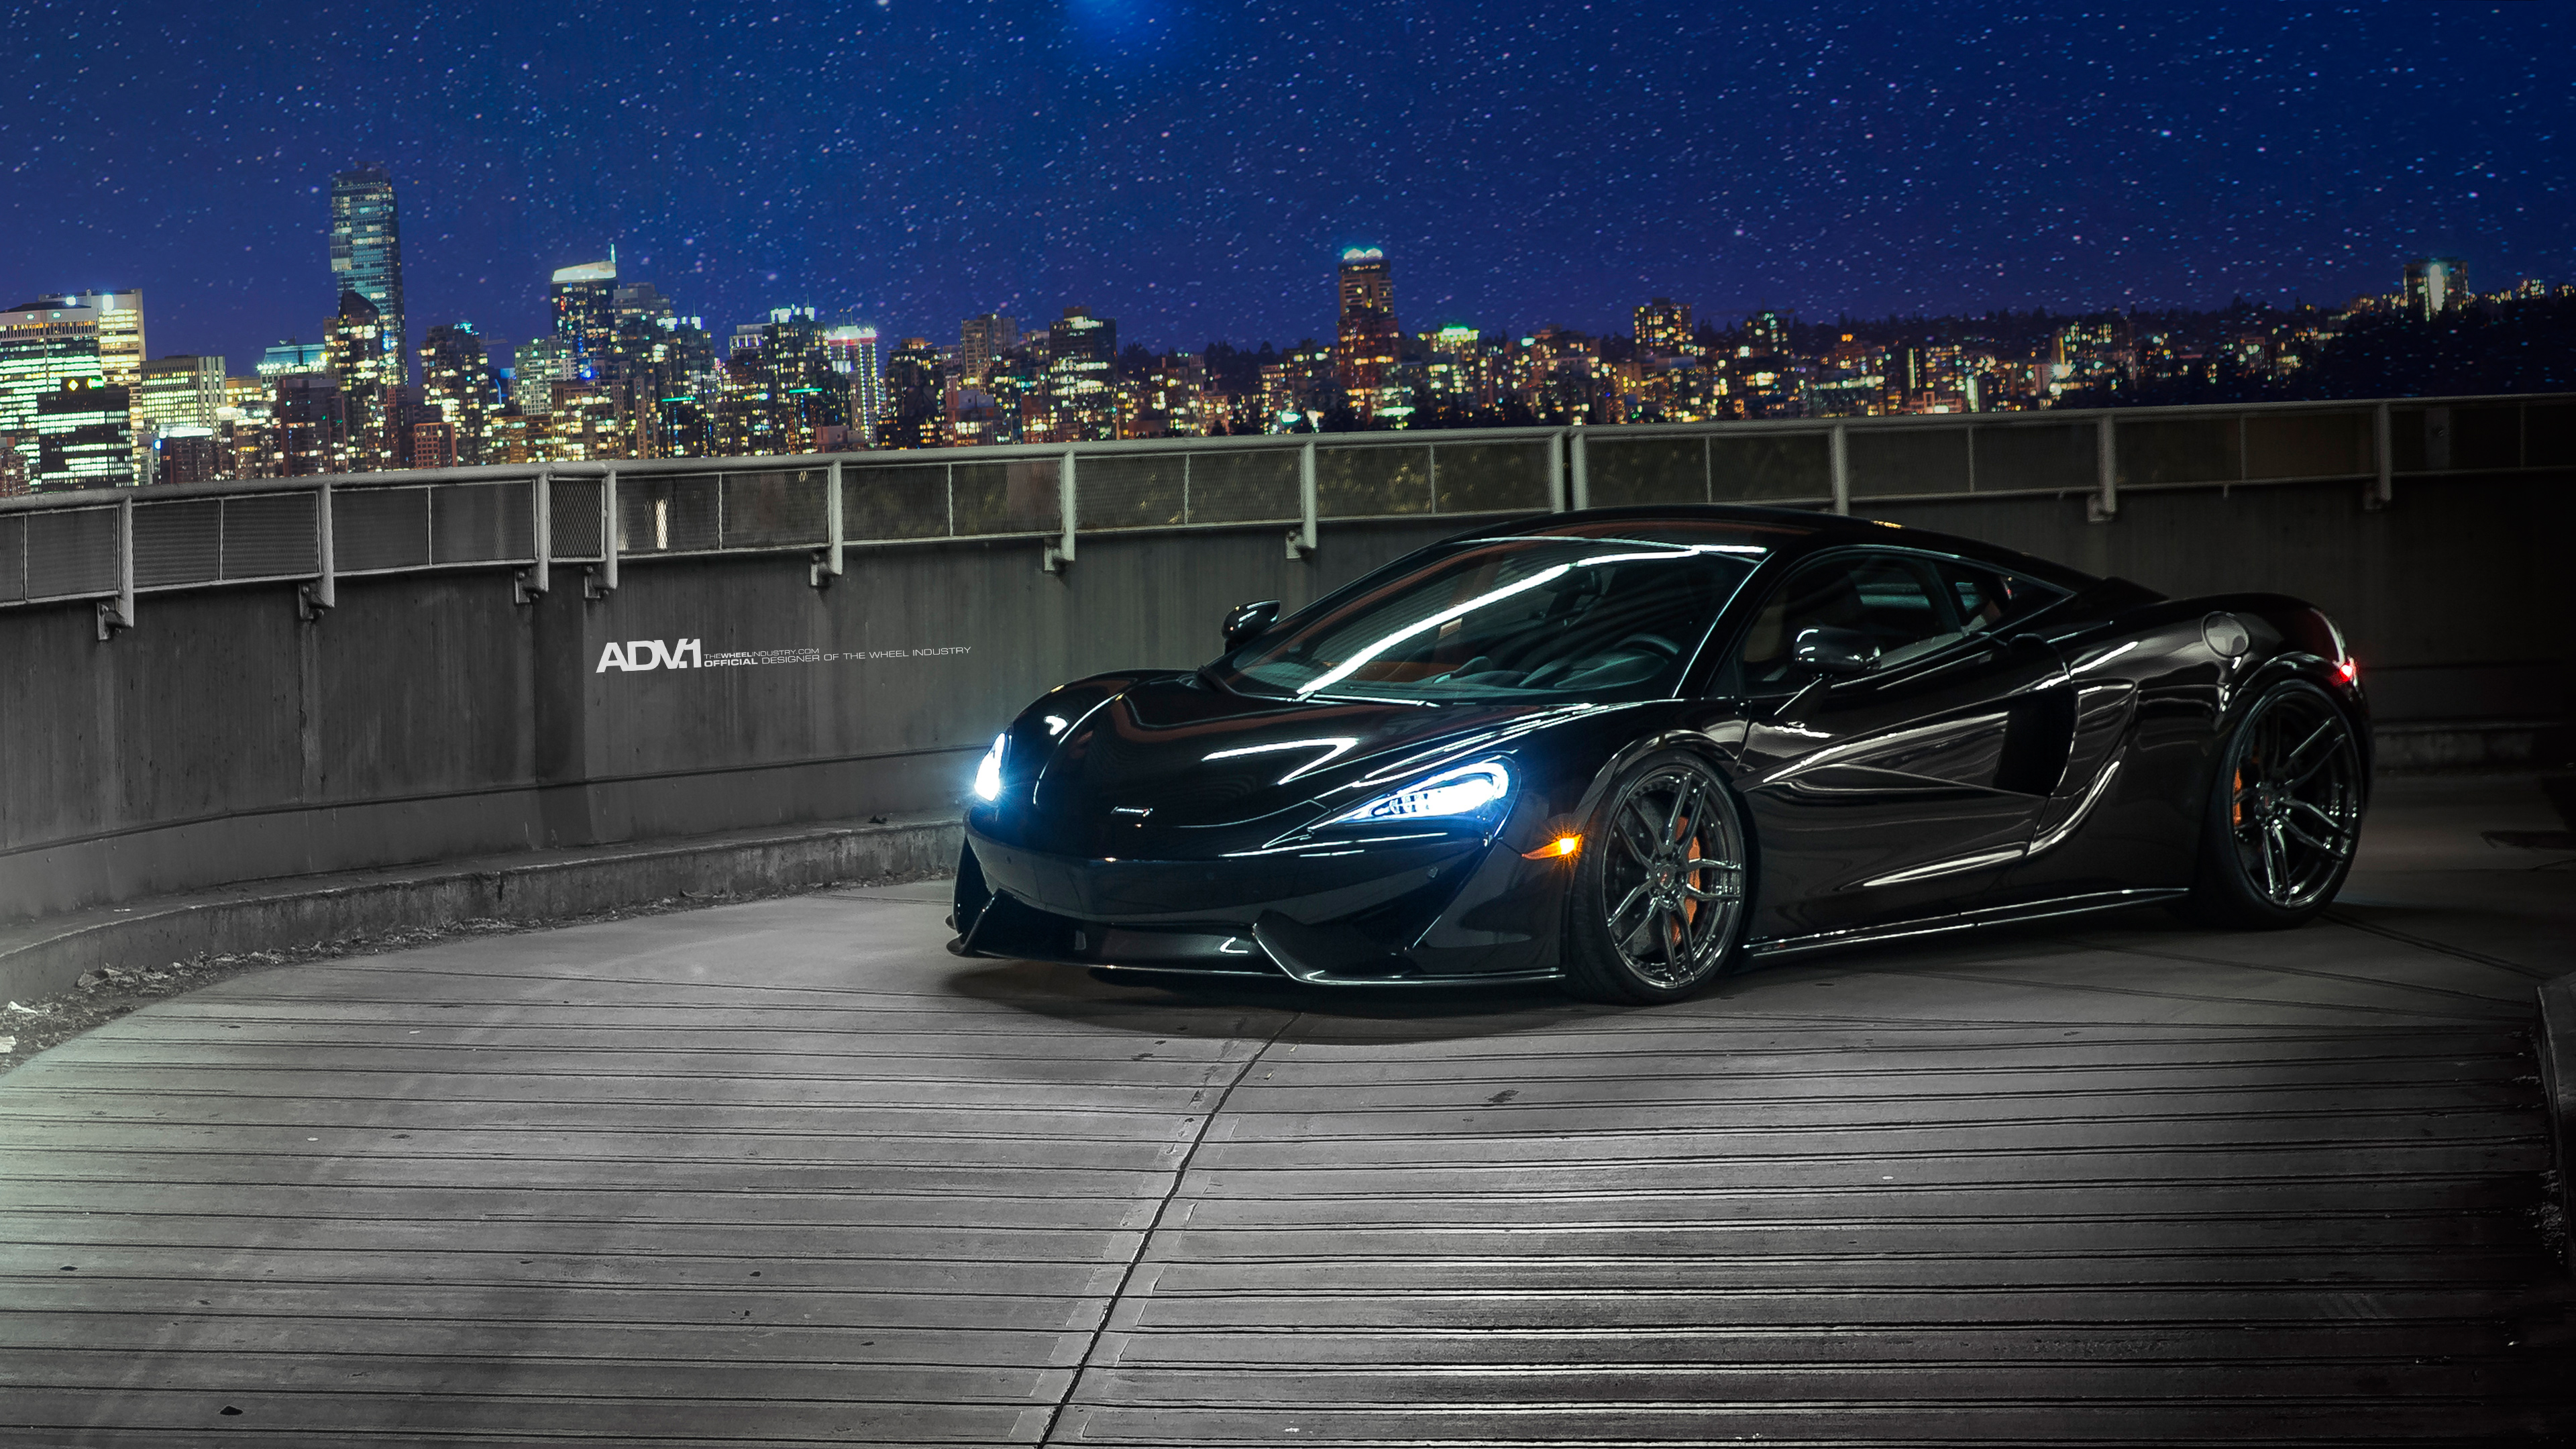 McLaren 570S ADV005 MV2 CS Wheels Wallpaper HD Car Wallpapers 3840x2160